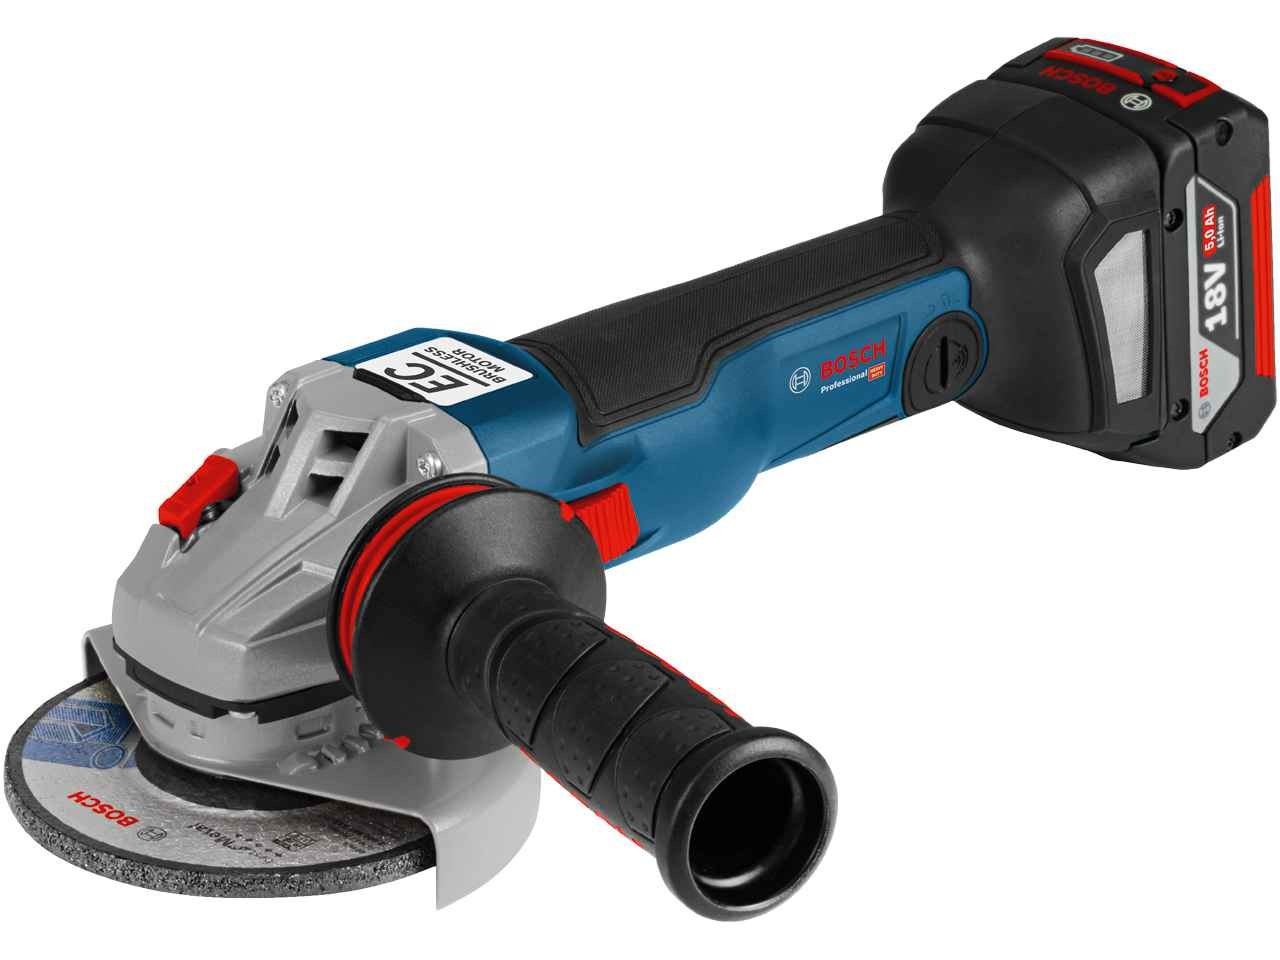 cordless grinder. bosch gws18v125scncg 18v 125mm bluetooth professional cordless angle grinder - bare unit x